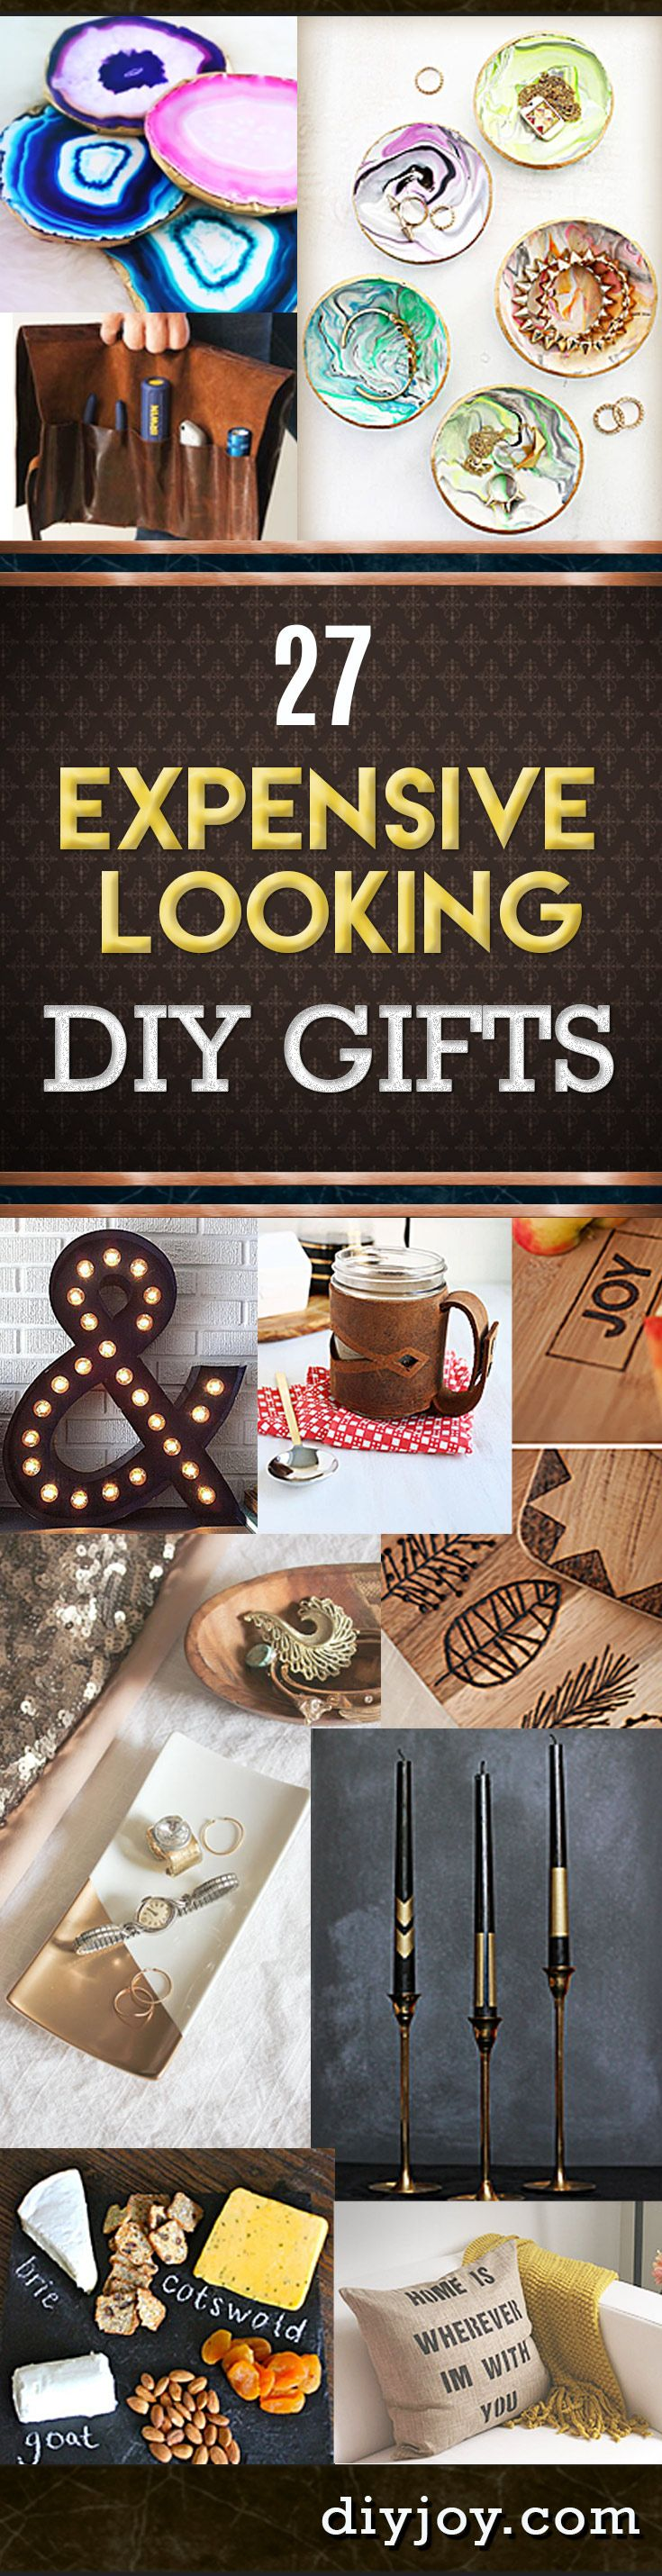 Best 25+ Diy christmas gifts ideas on Pinterest | Diy xmas gifts ...